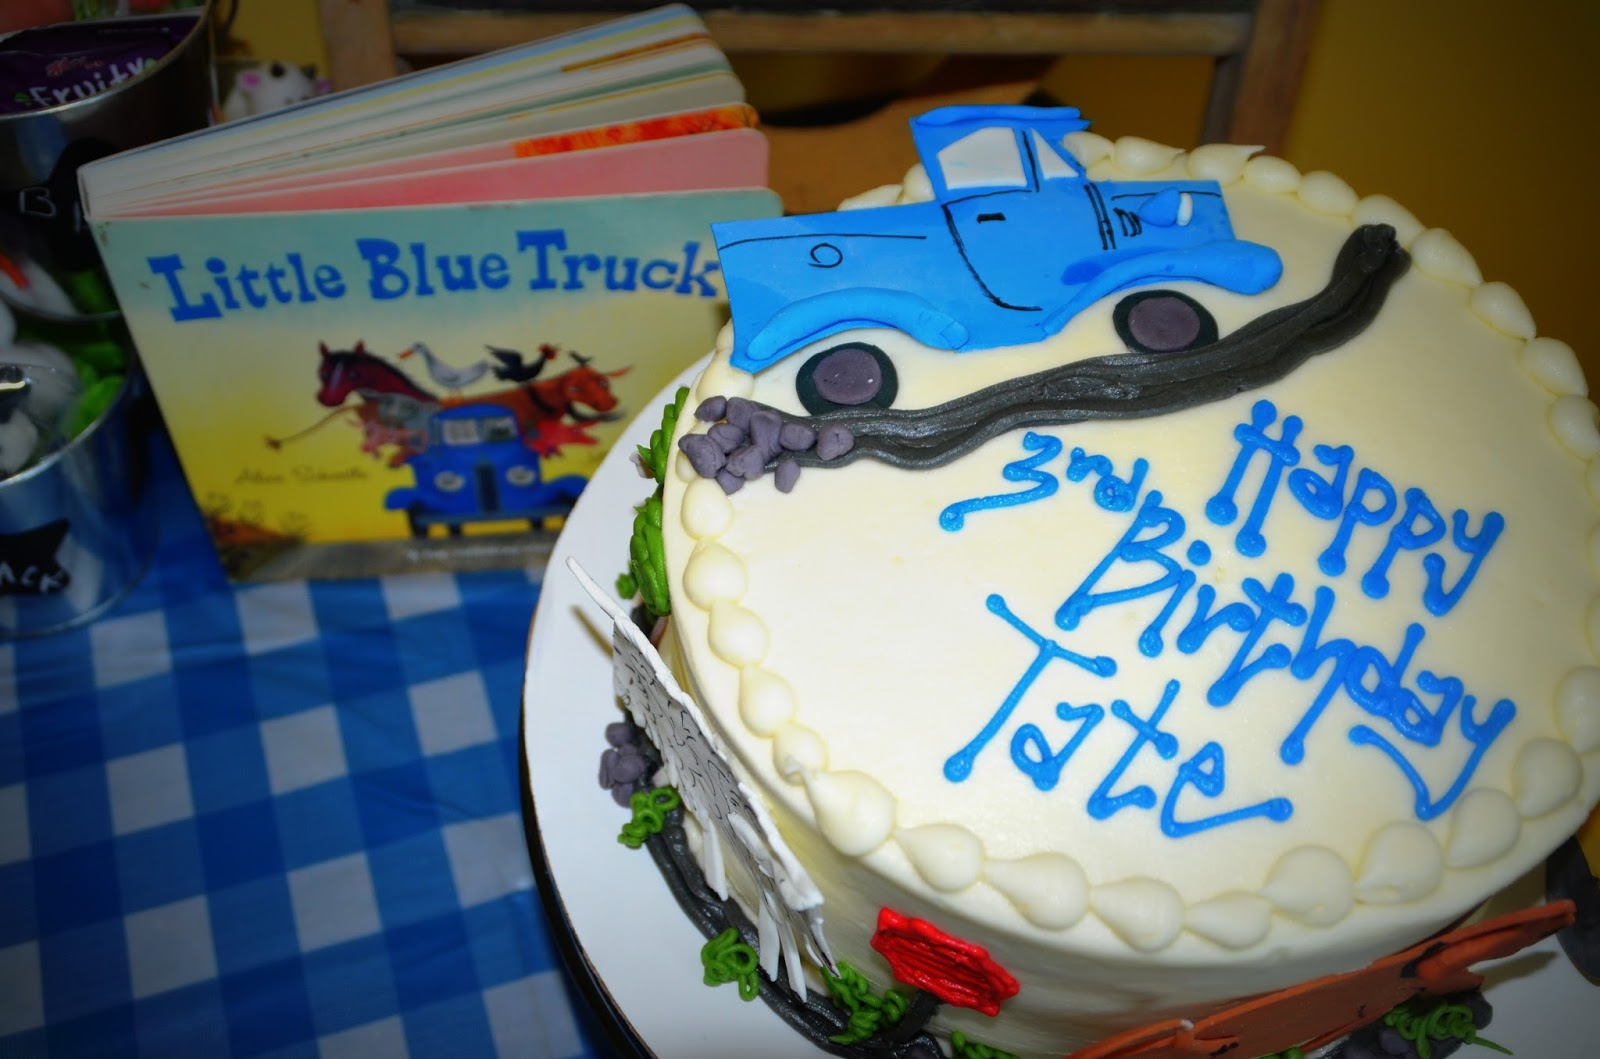 Blue Truck birthday cake. The cake told the story of the little blue ...